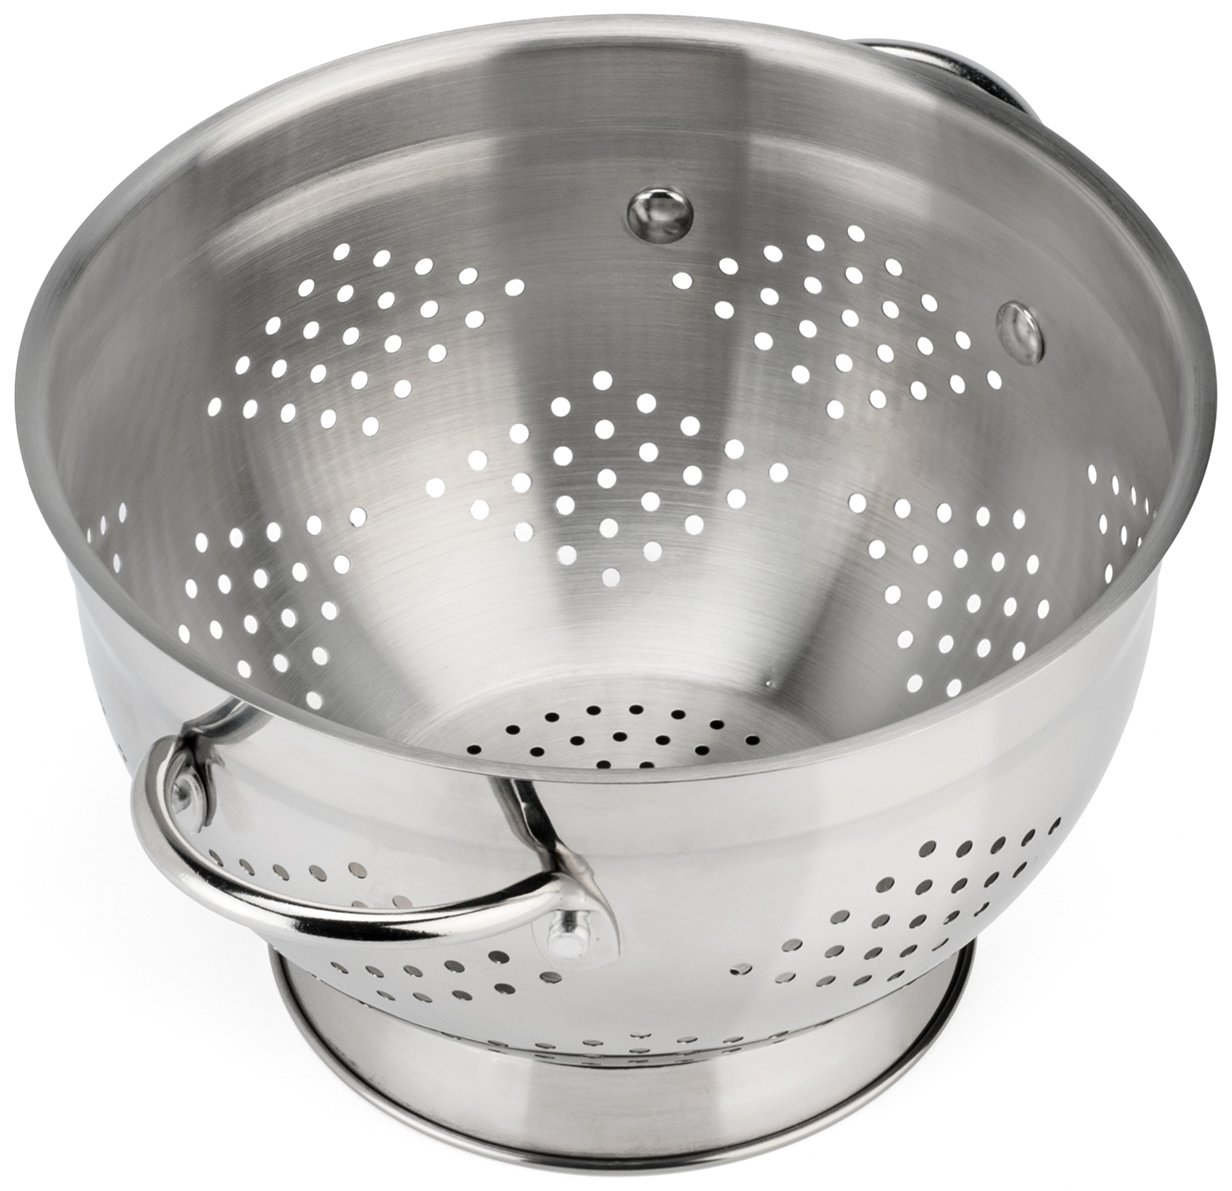 Raishi Stainless Steel Colander for Easy Cleaning - 5 Quart Restaurant Quality Grade Guarantee. Best Metal Colander 308